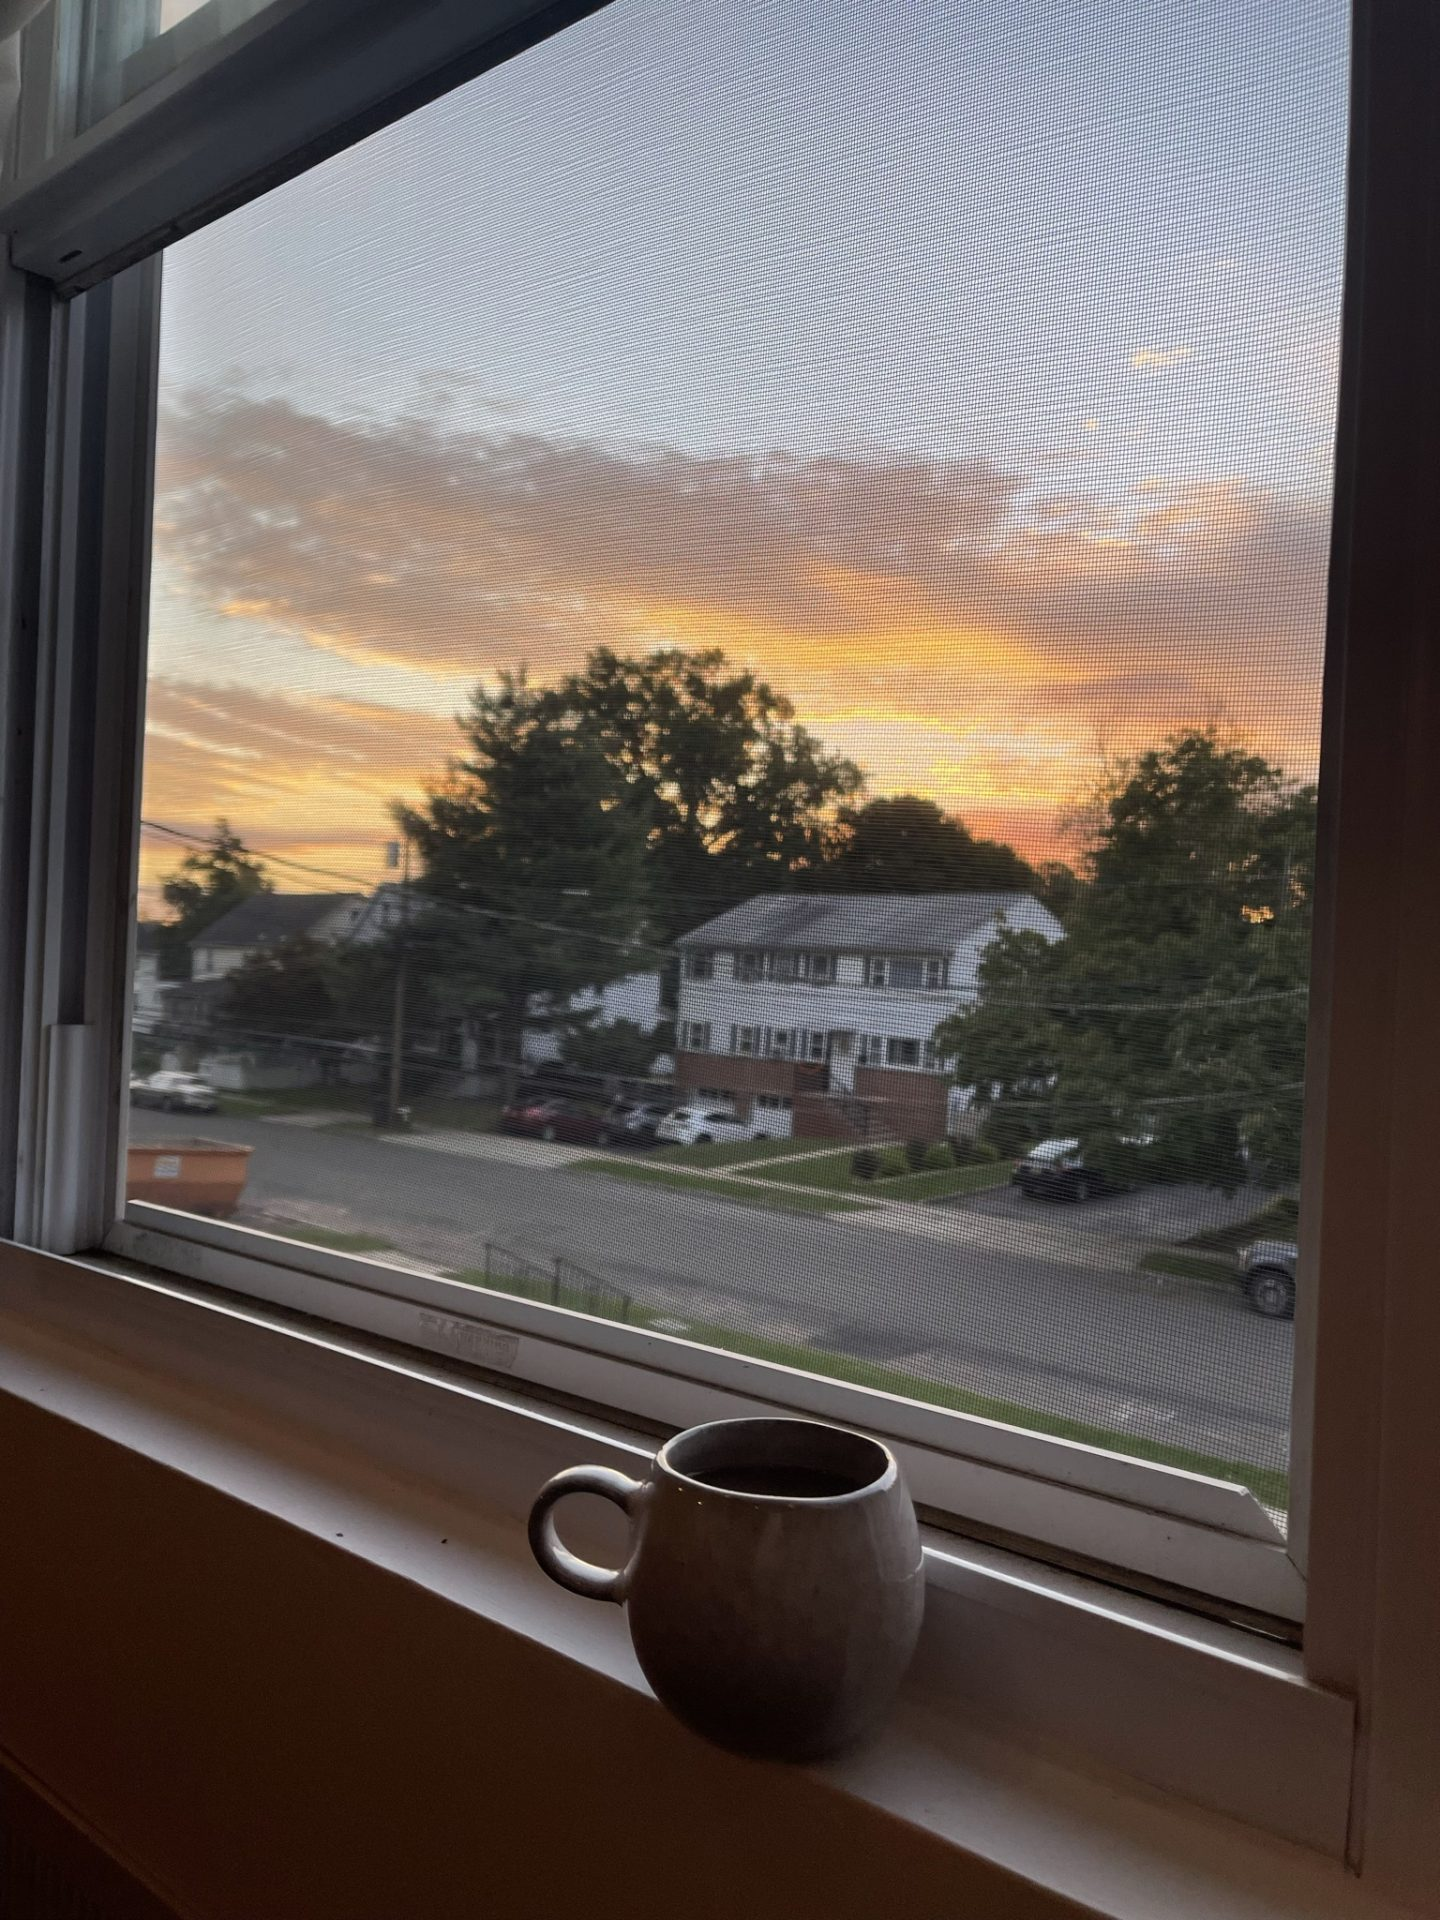 Moving to New Jersey - coffee with a sunrise